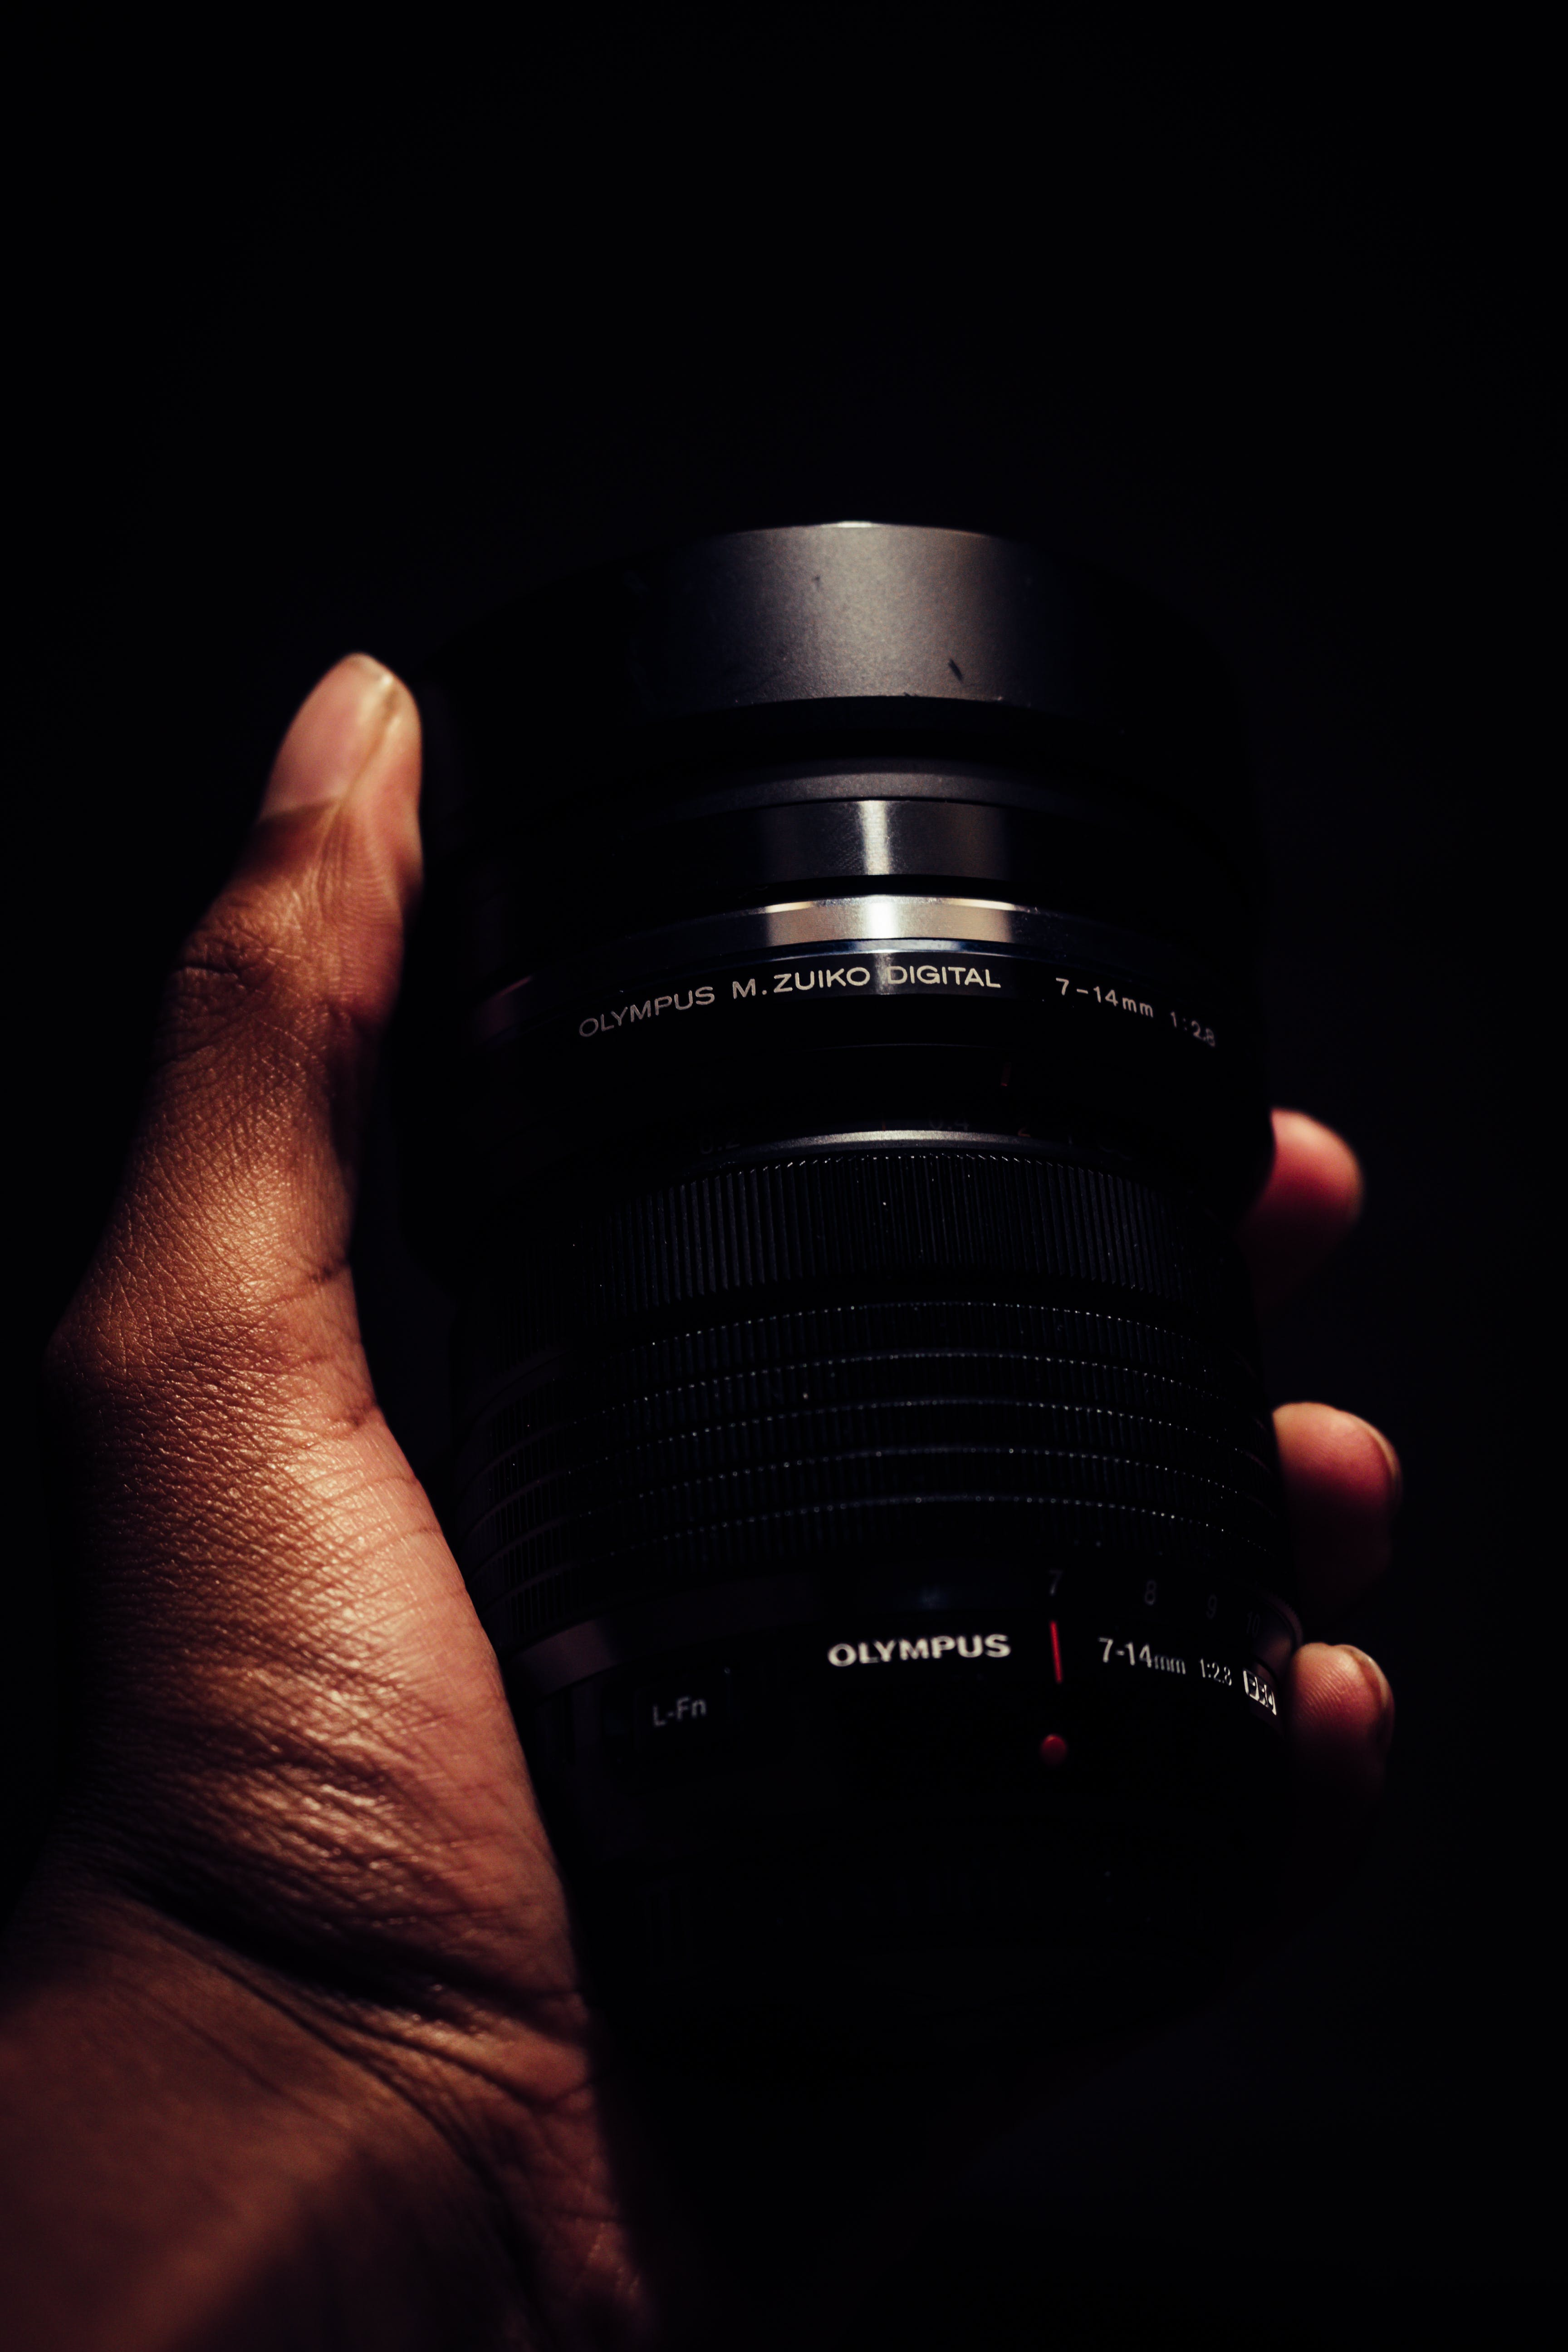 Person Holding Black Olympus Camera Lens